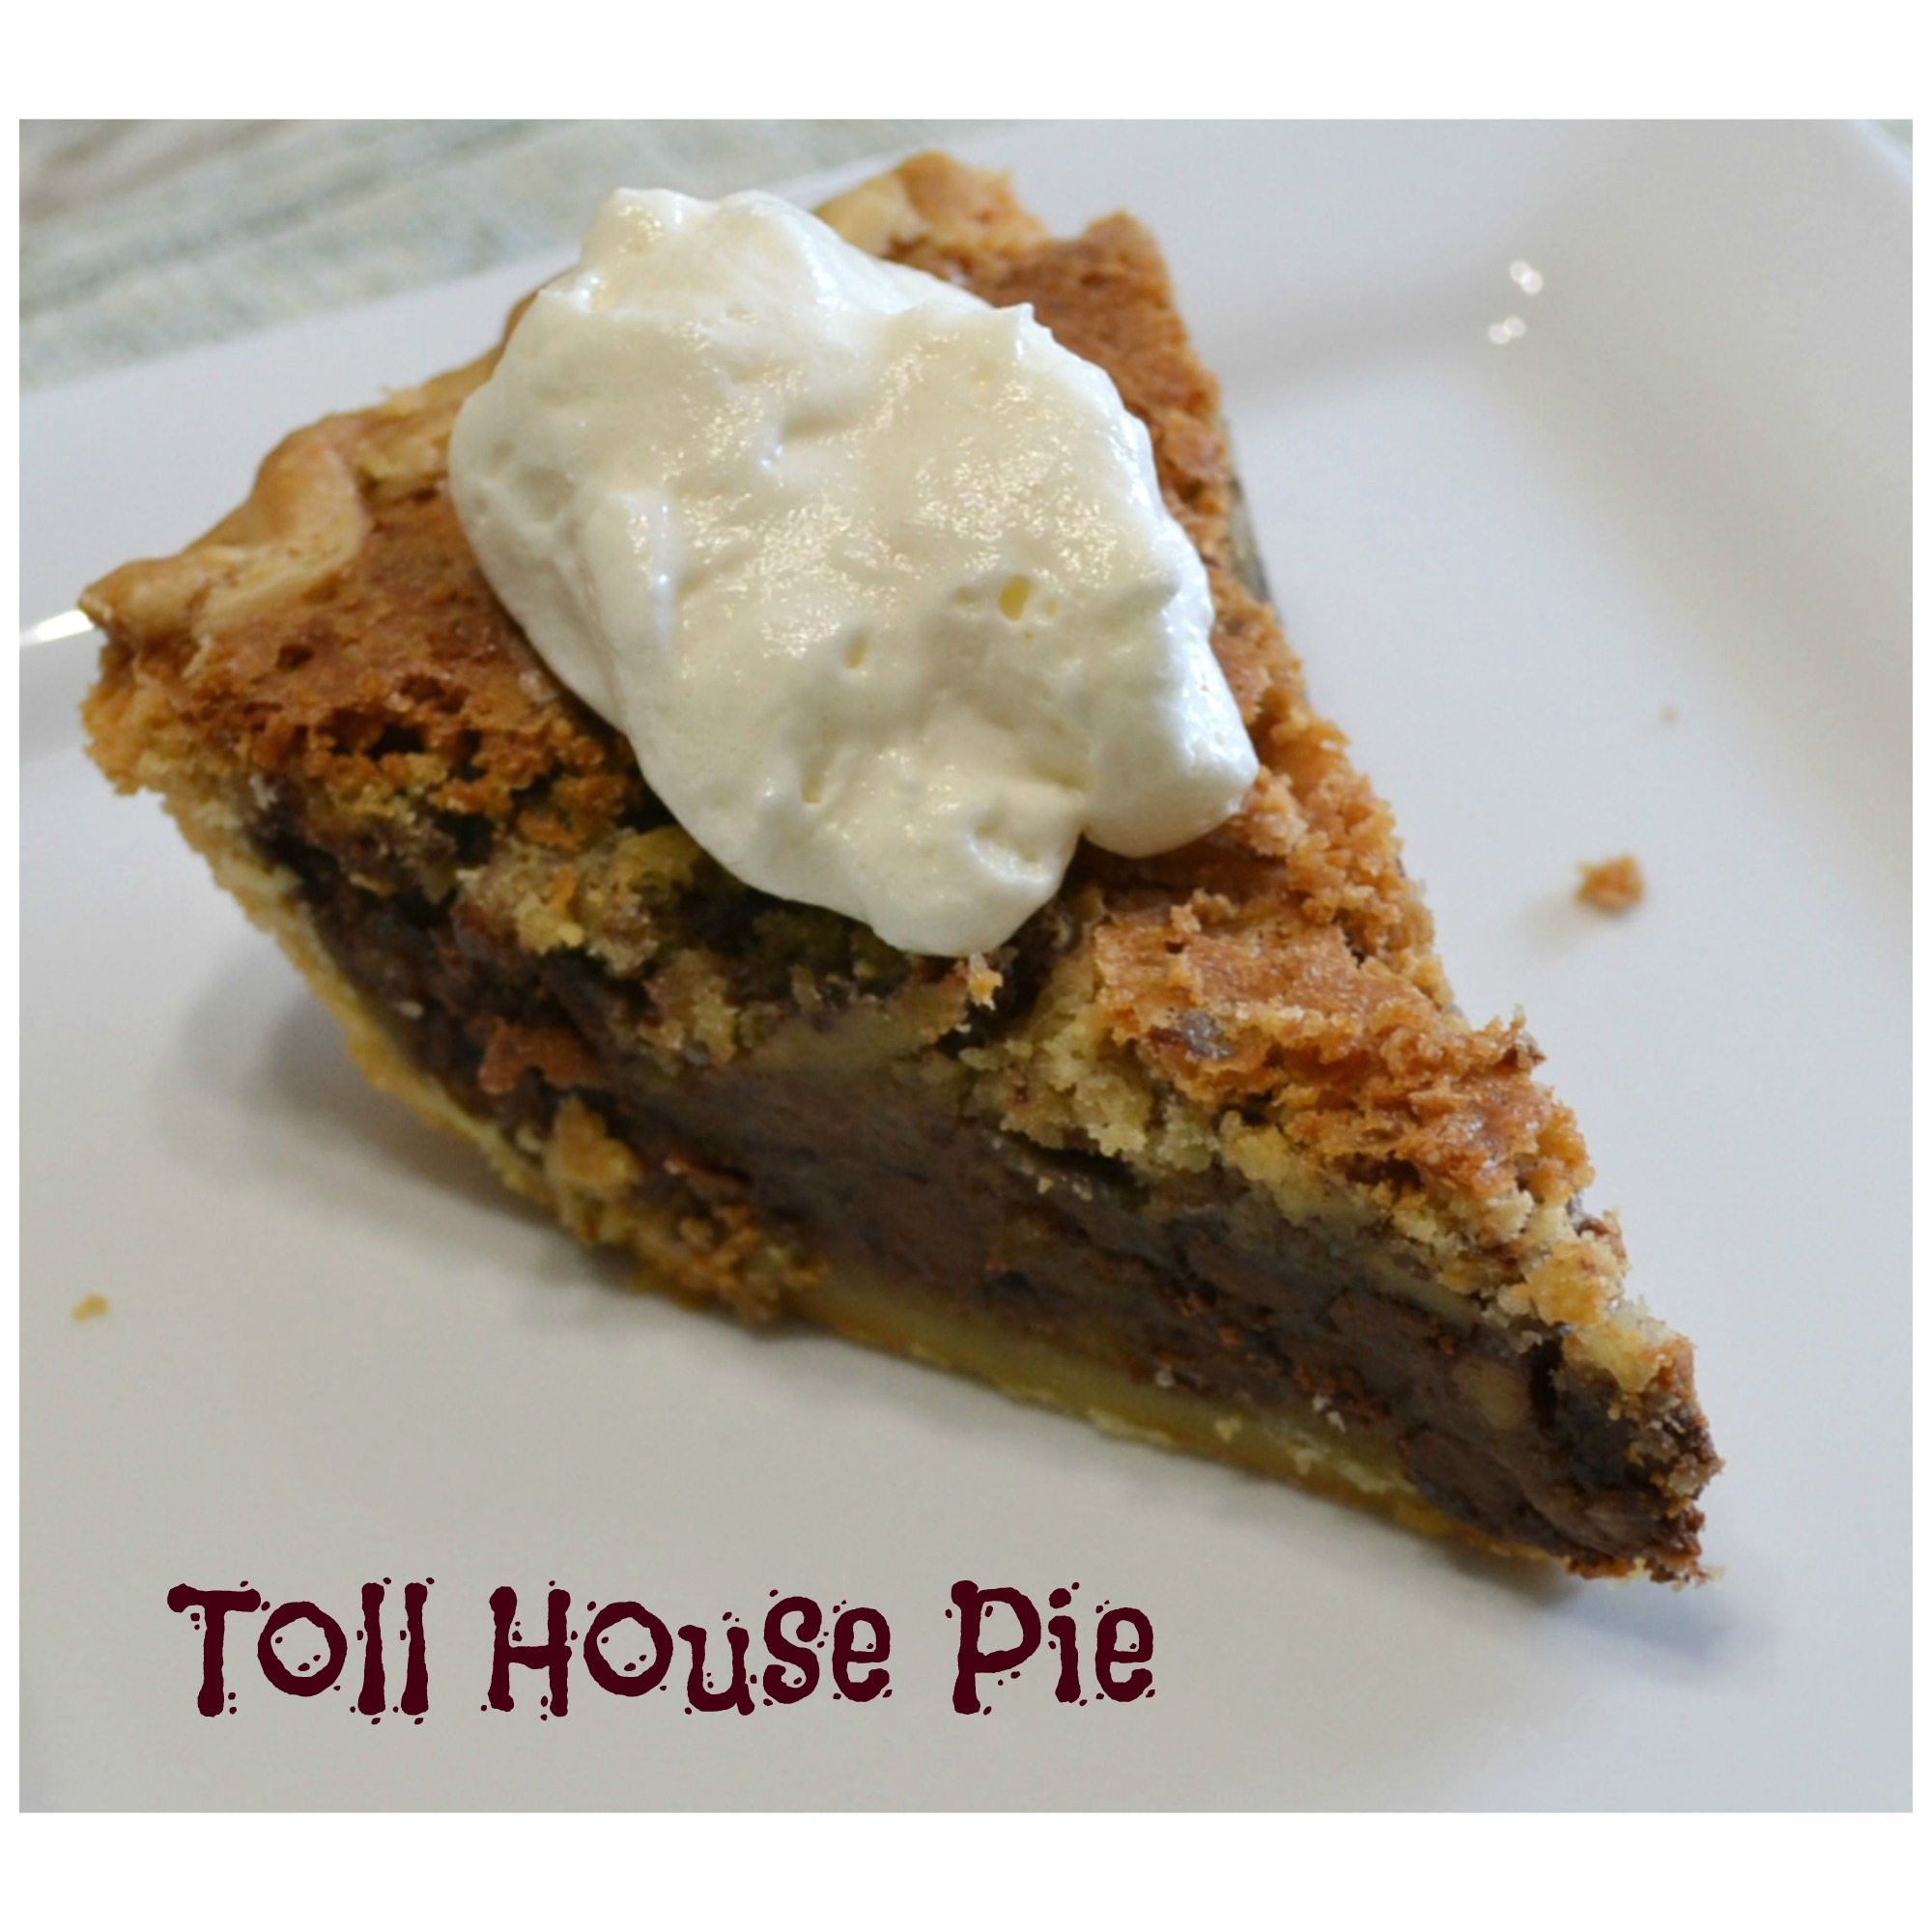 This Toll House Pie is a delicious and easy to make retro dessert.